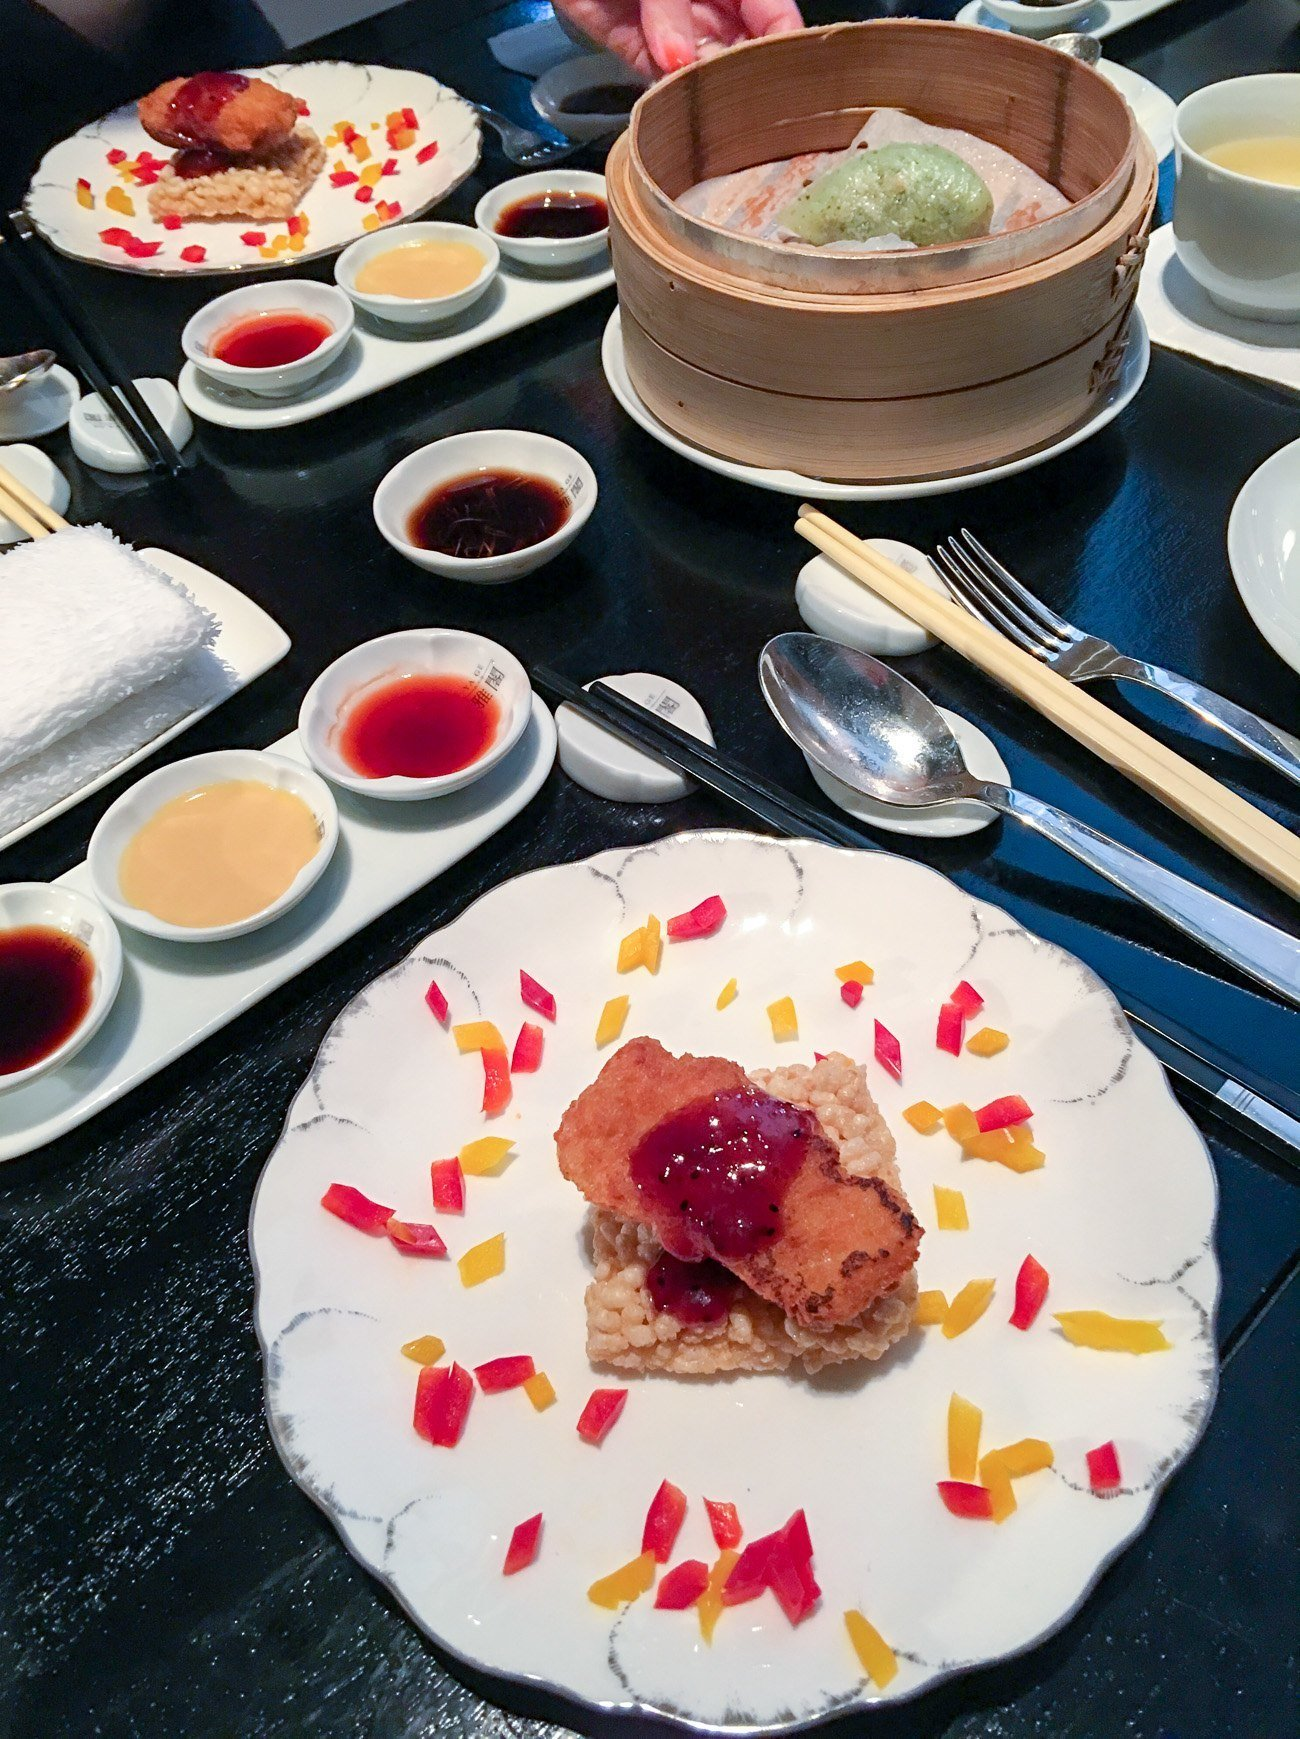 Crispy Suckling Pig Enrobed in Minced Shrimp with Crisp Rice and Strawberry Sauce at Mandarin Oriental, Taipei